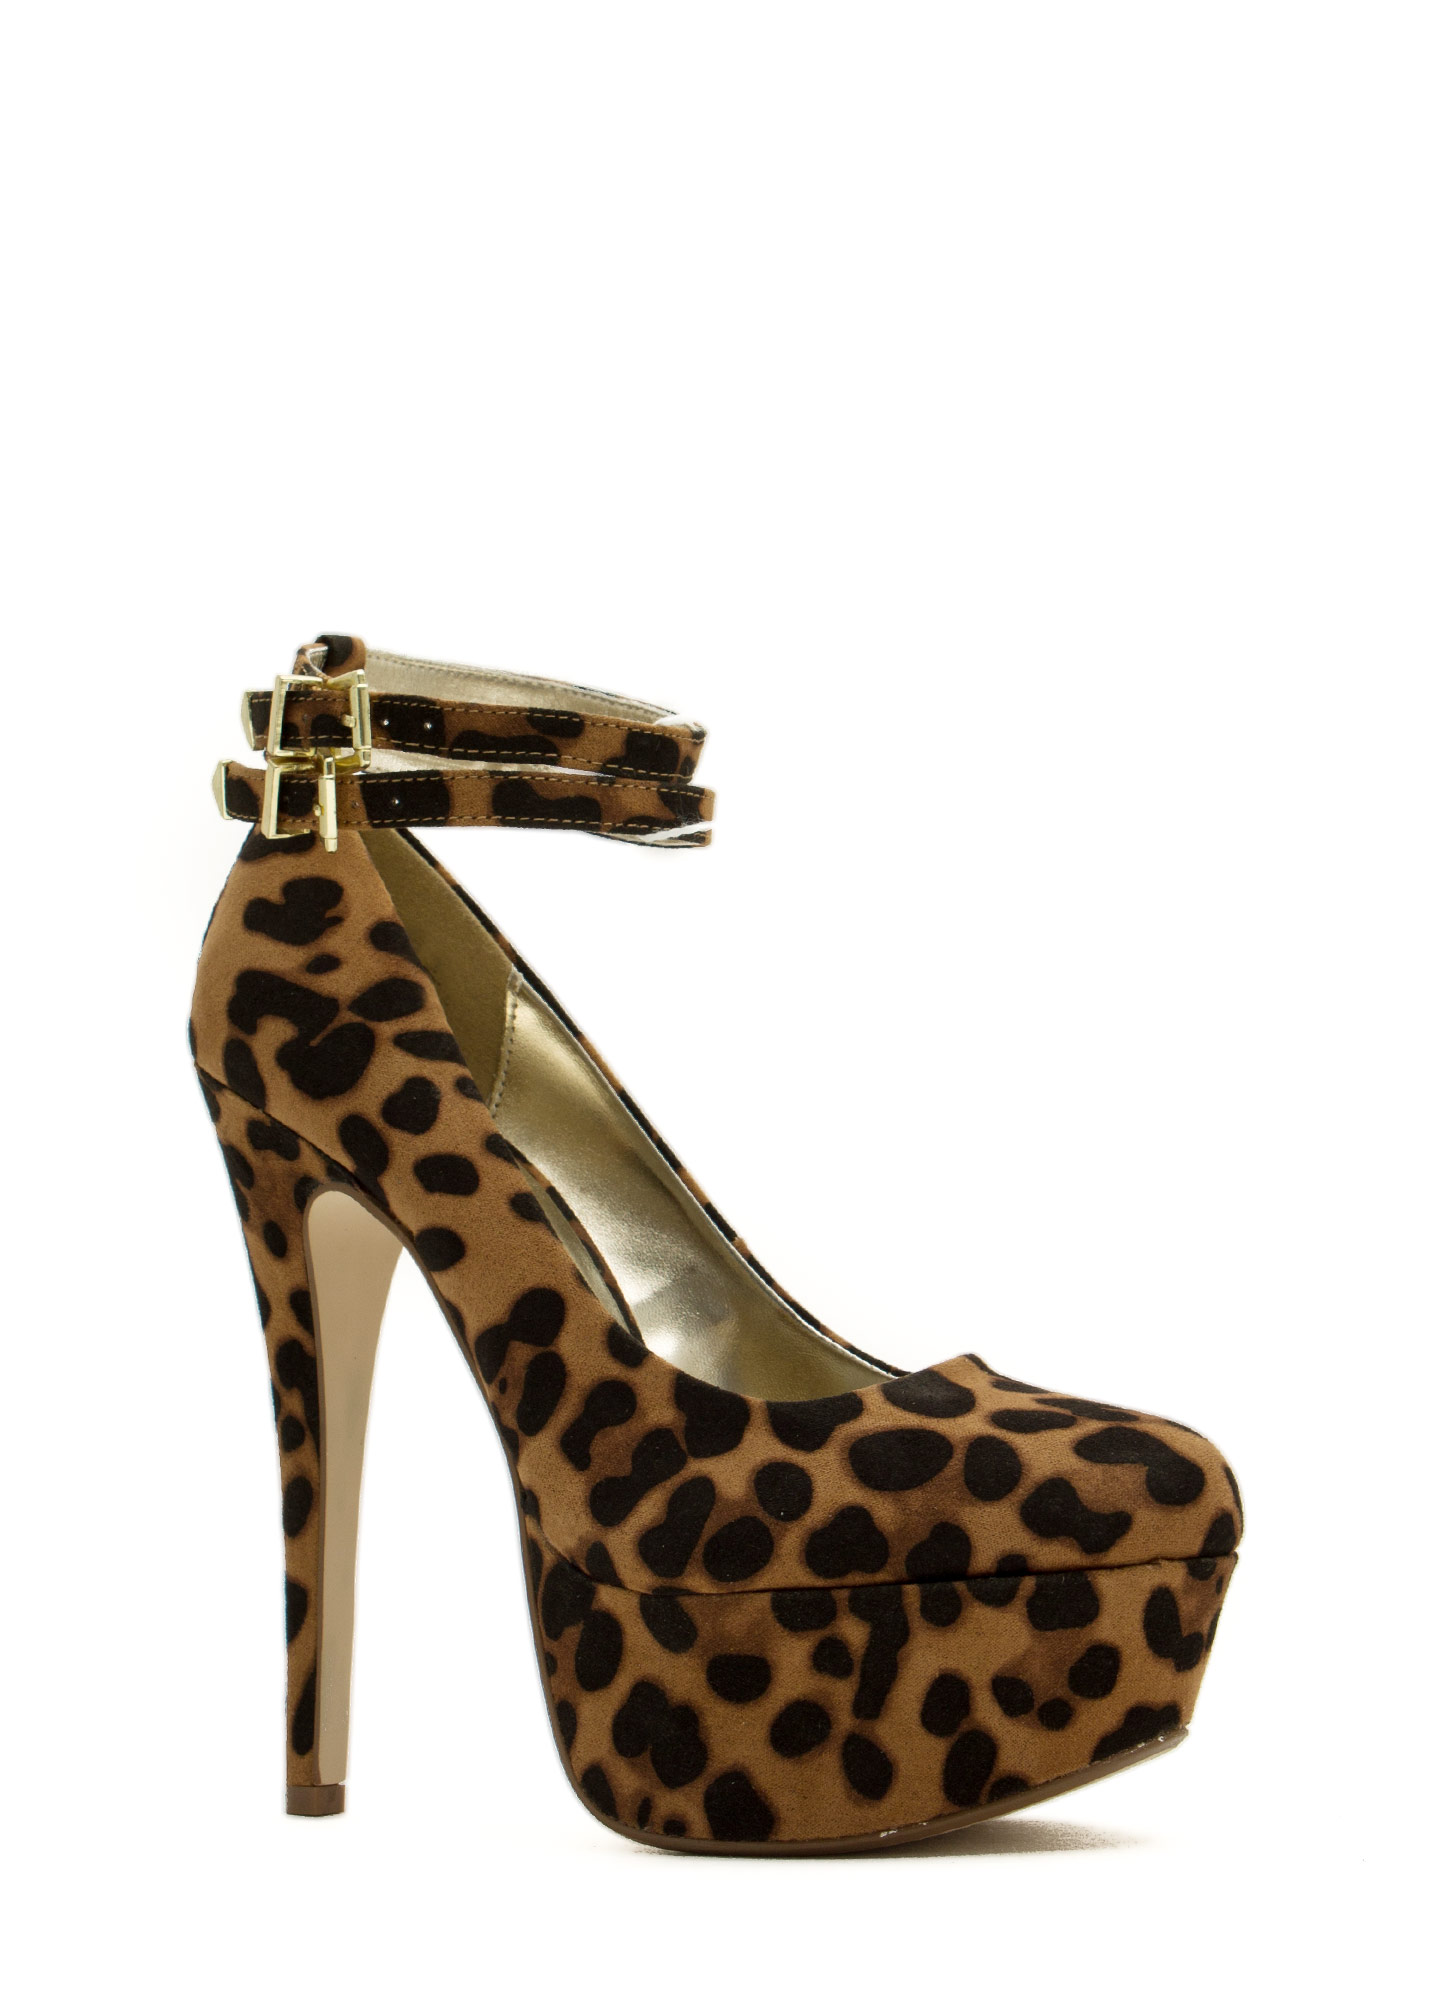 Twice As Nice Buckled Platforms LEOPARD